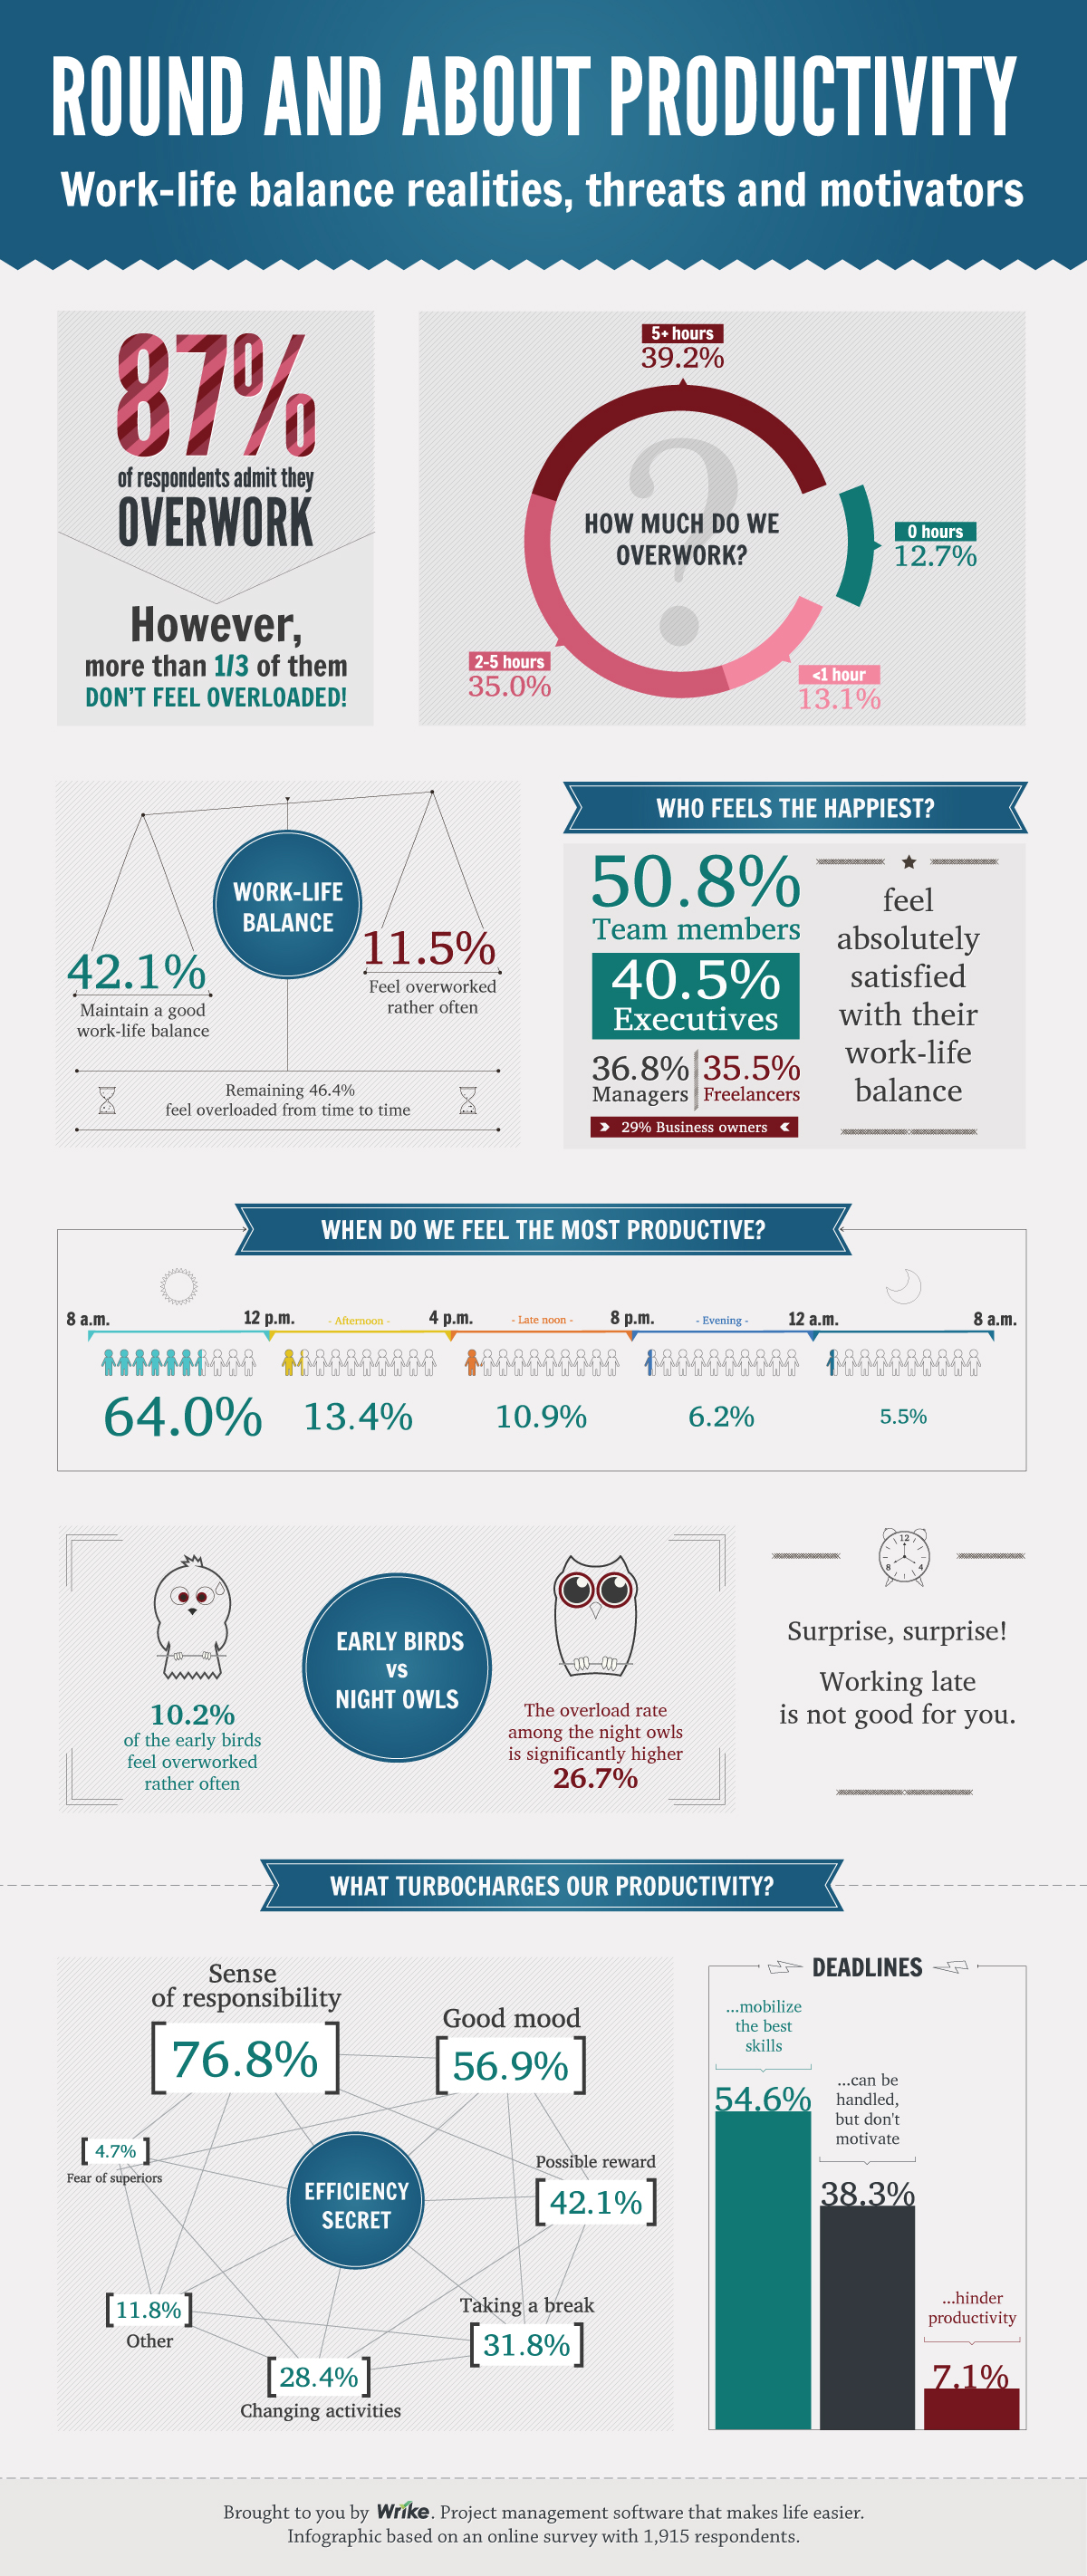 http://www.wrike.com/blog_images/311816/Wrike_productivity_survey_infographic.jpg